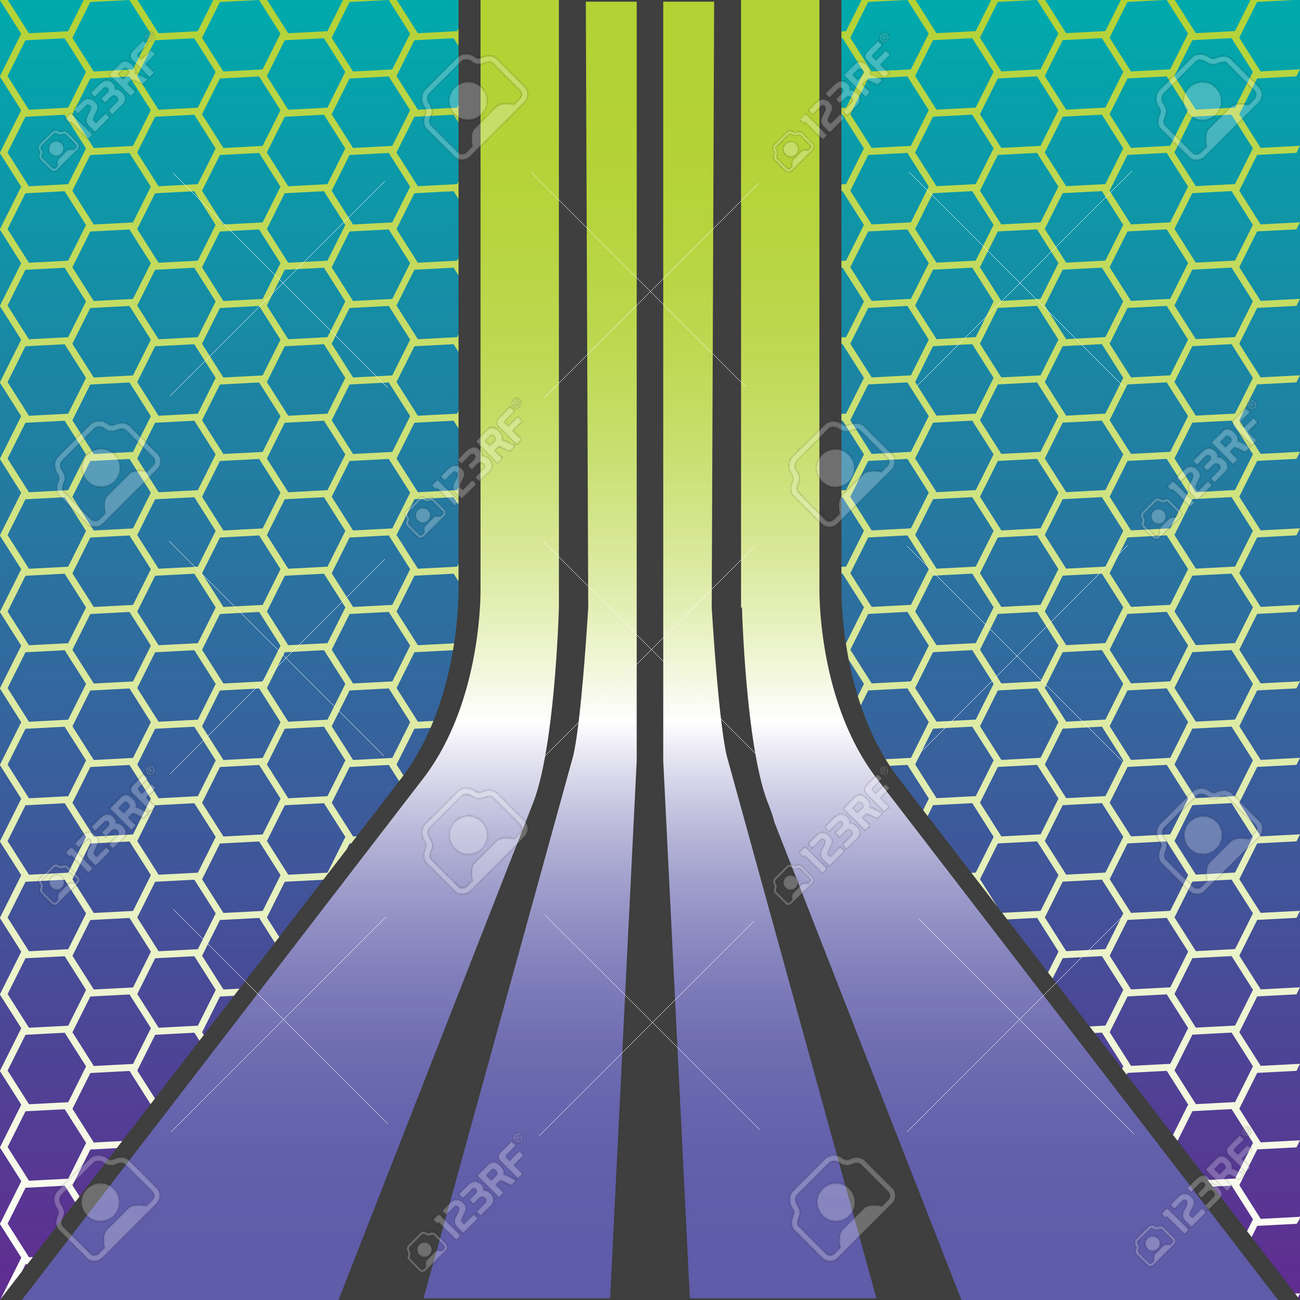 retro stripes composition over honey comb texture, abstract art illustration Stock Vector - 6690650